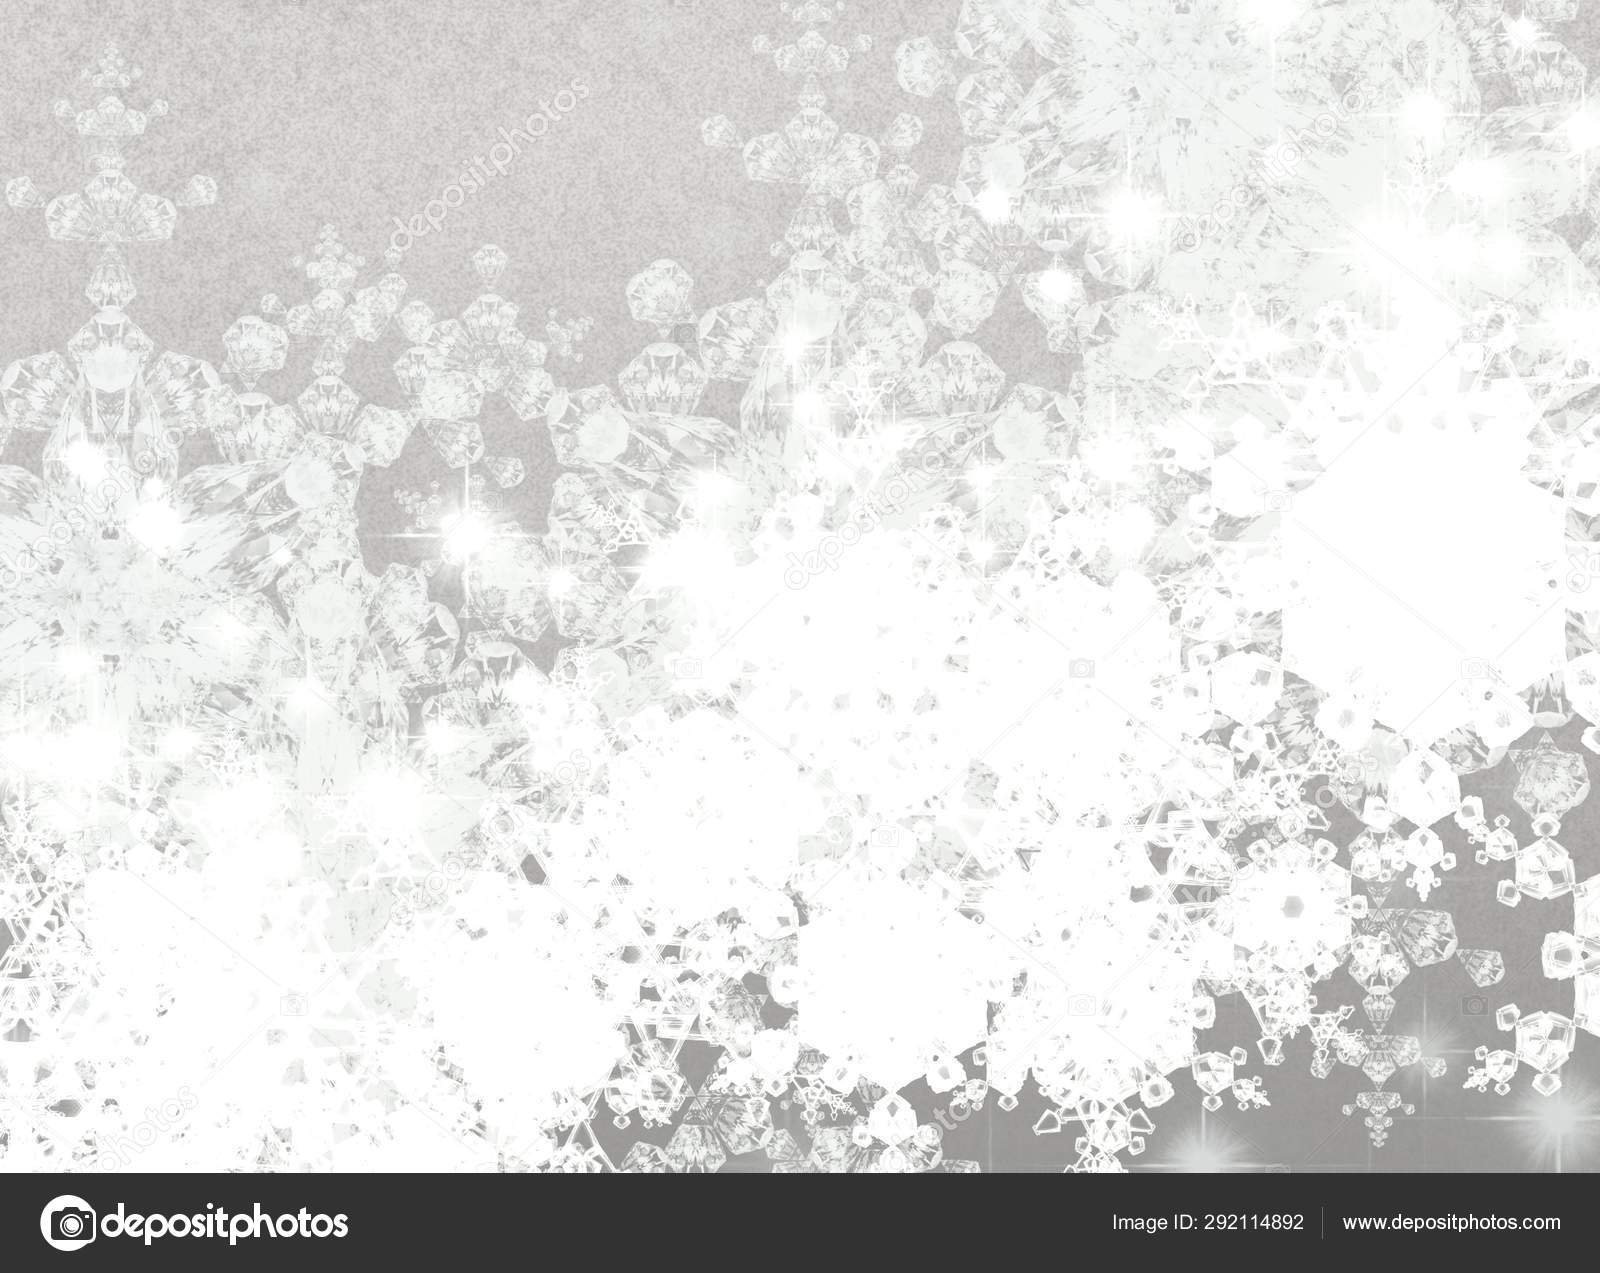 New Year Theme Background Winter Wallpaper Stock Photo C Nordenworks Gmail Com 292114892